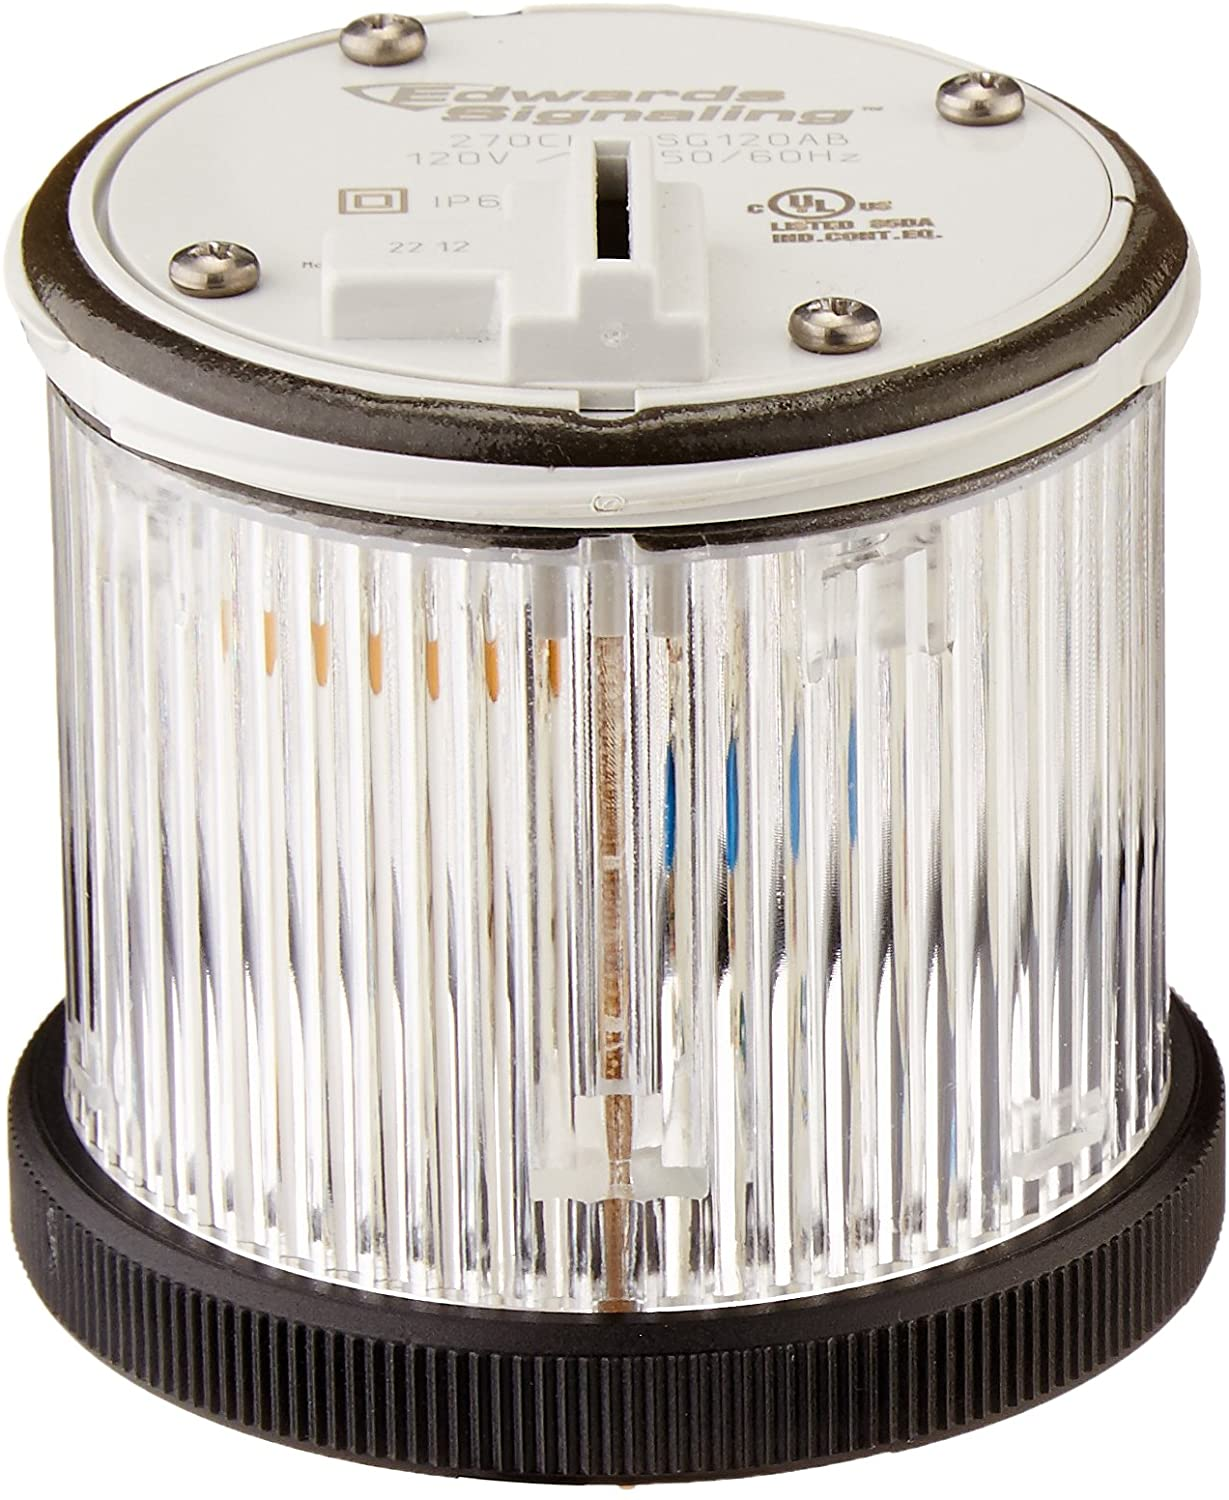 Edwards Signaling 270CLEDSG120AB ClearView Stacklight, 70mm